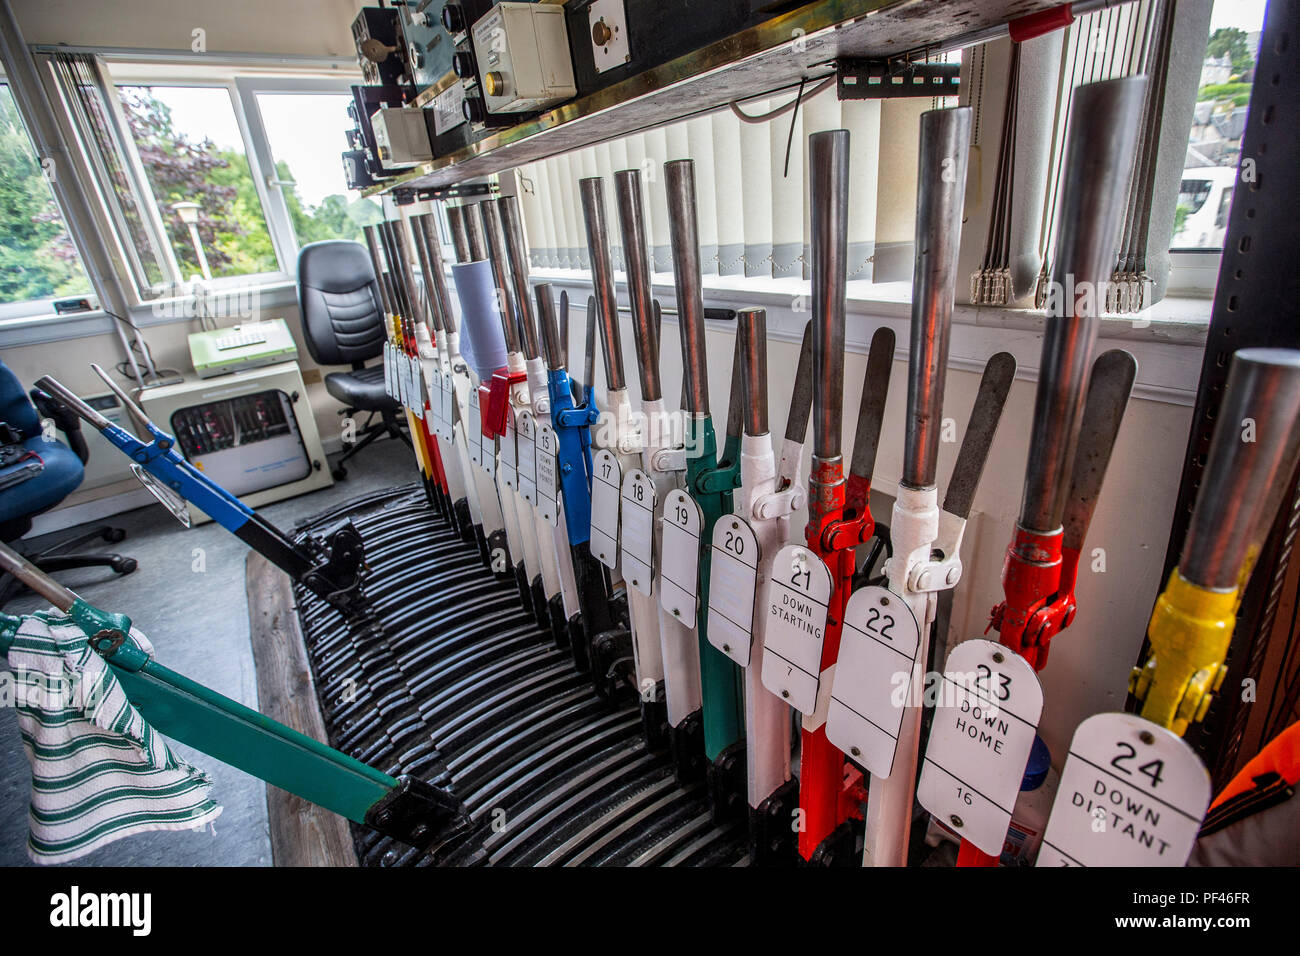 Old fashioned levers in signal box - Stock Image